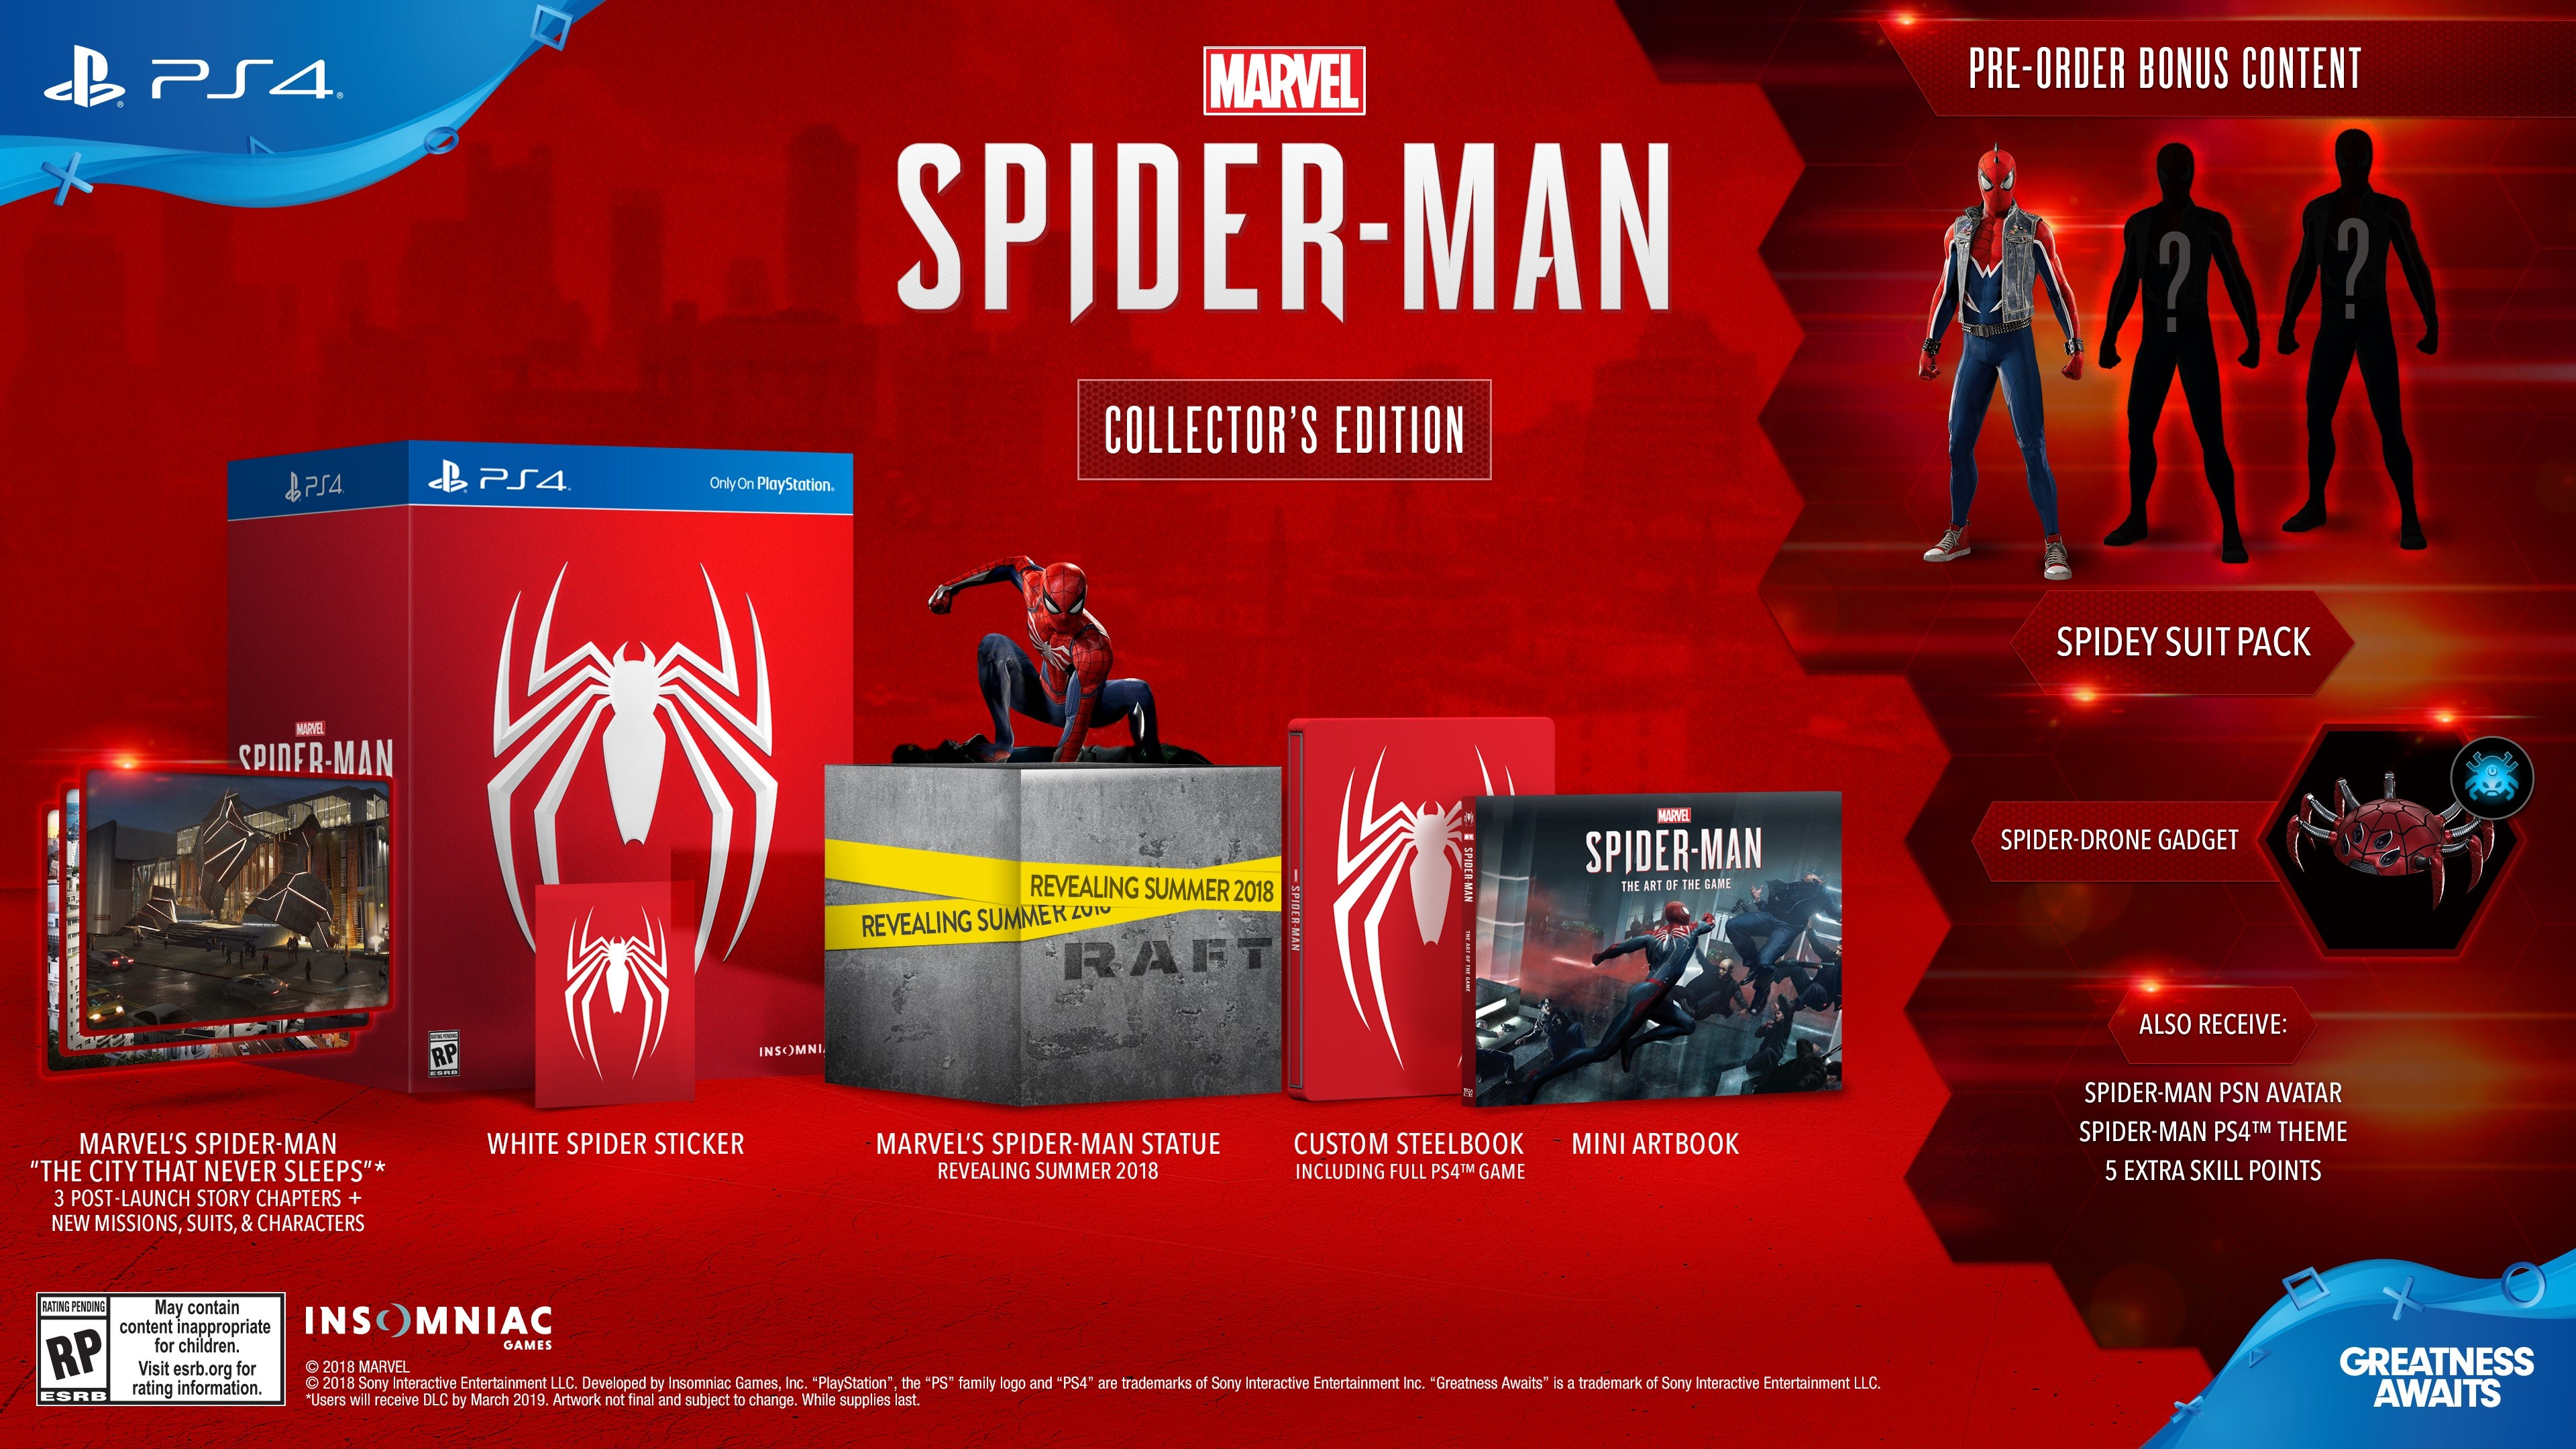 Insomniacs Spider Man Releases September 7 On PS4 With